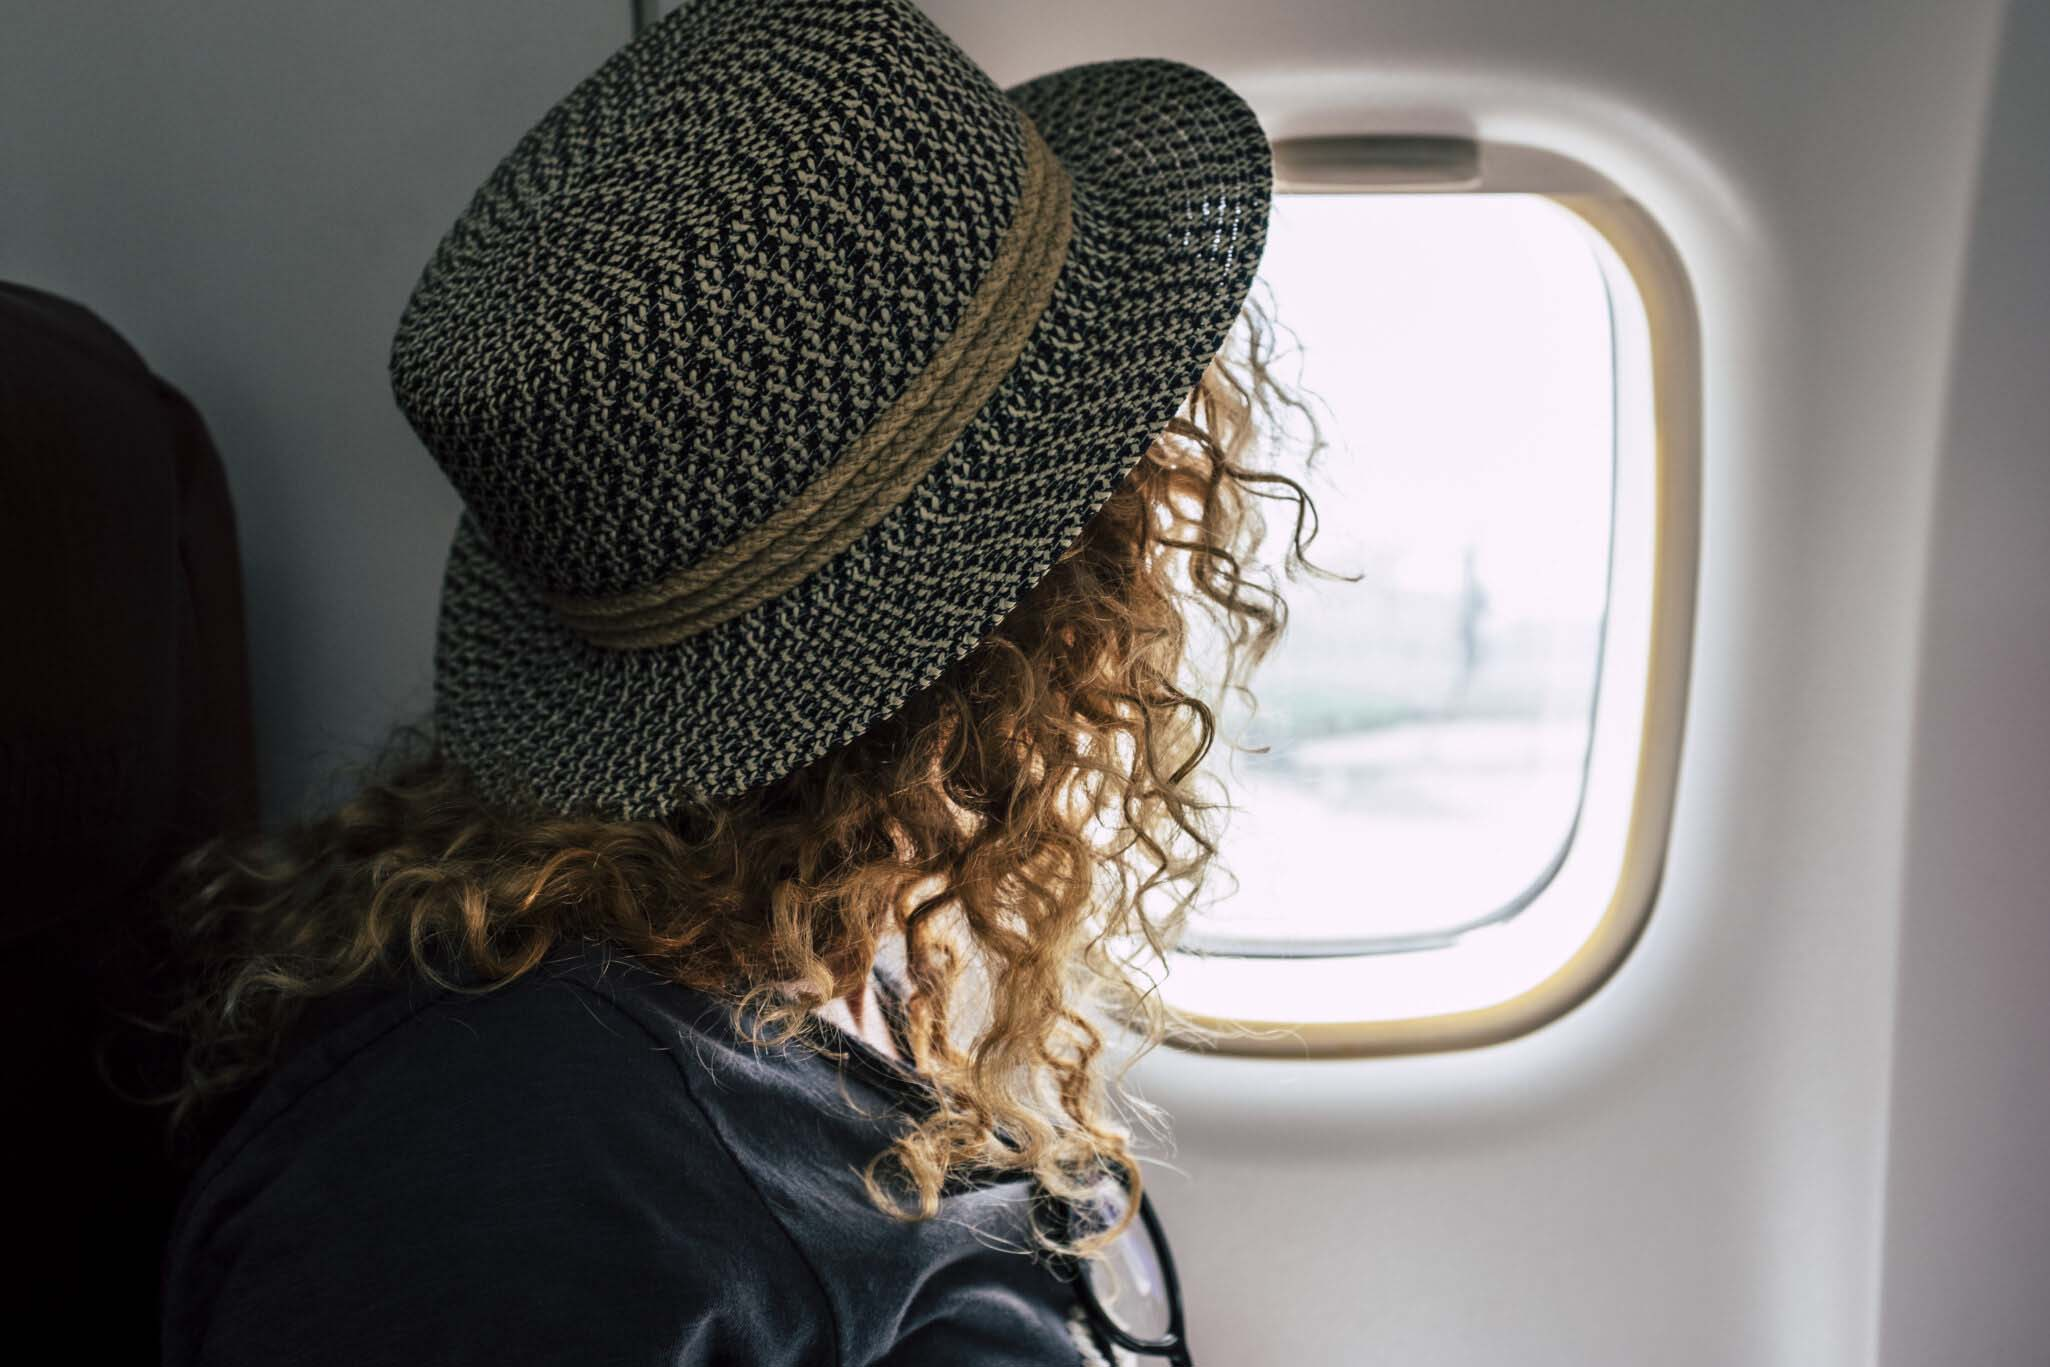 How to survive long flights – 9 key pieces of advice